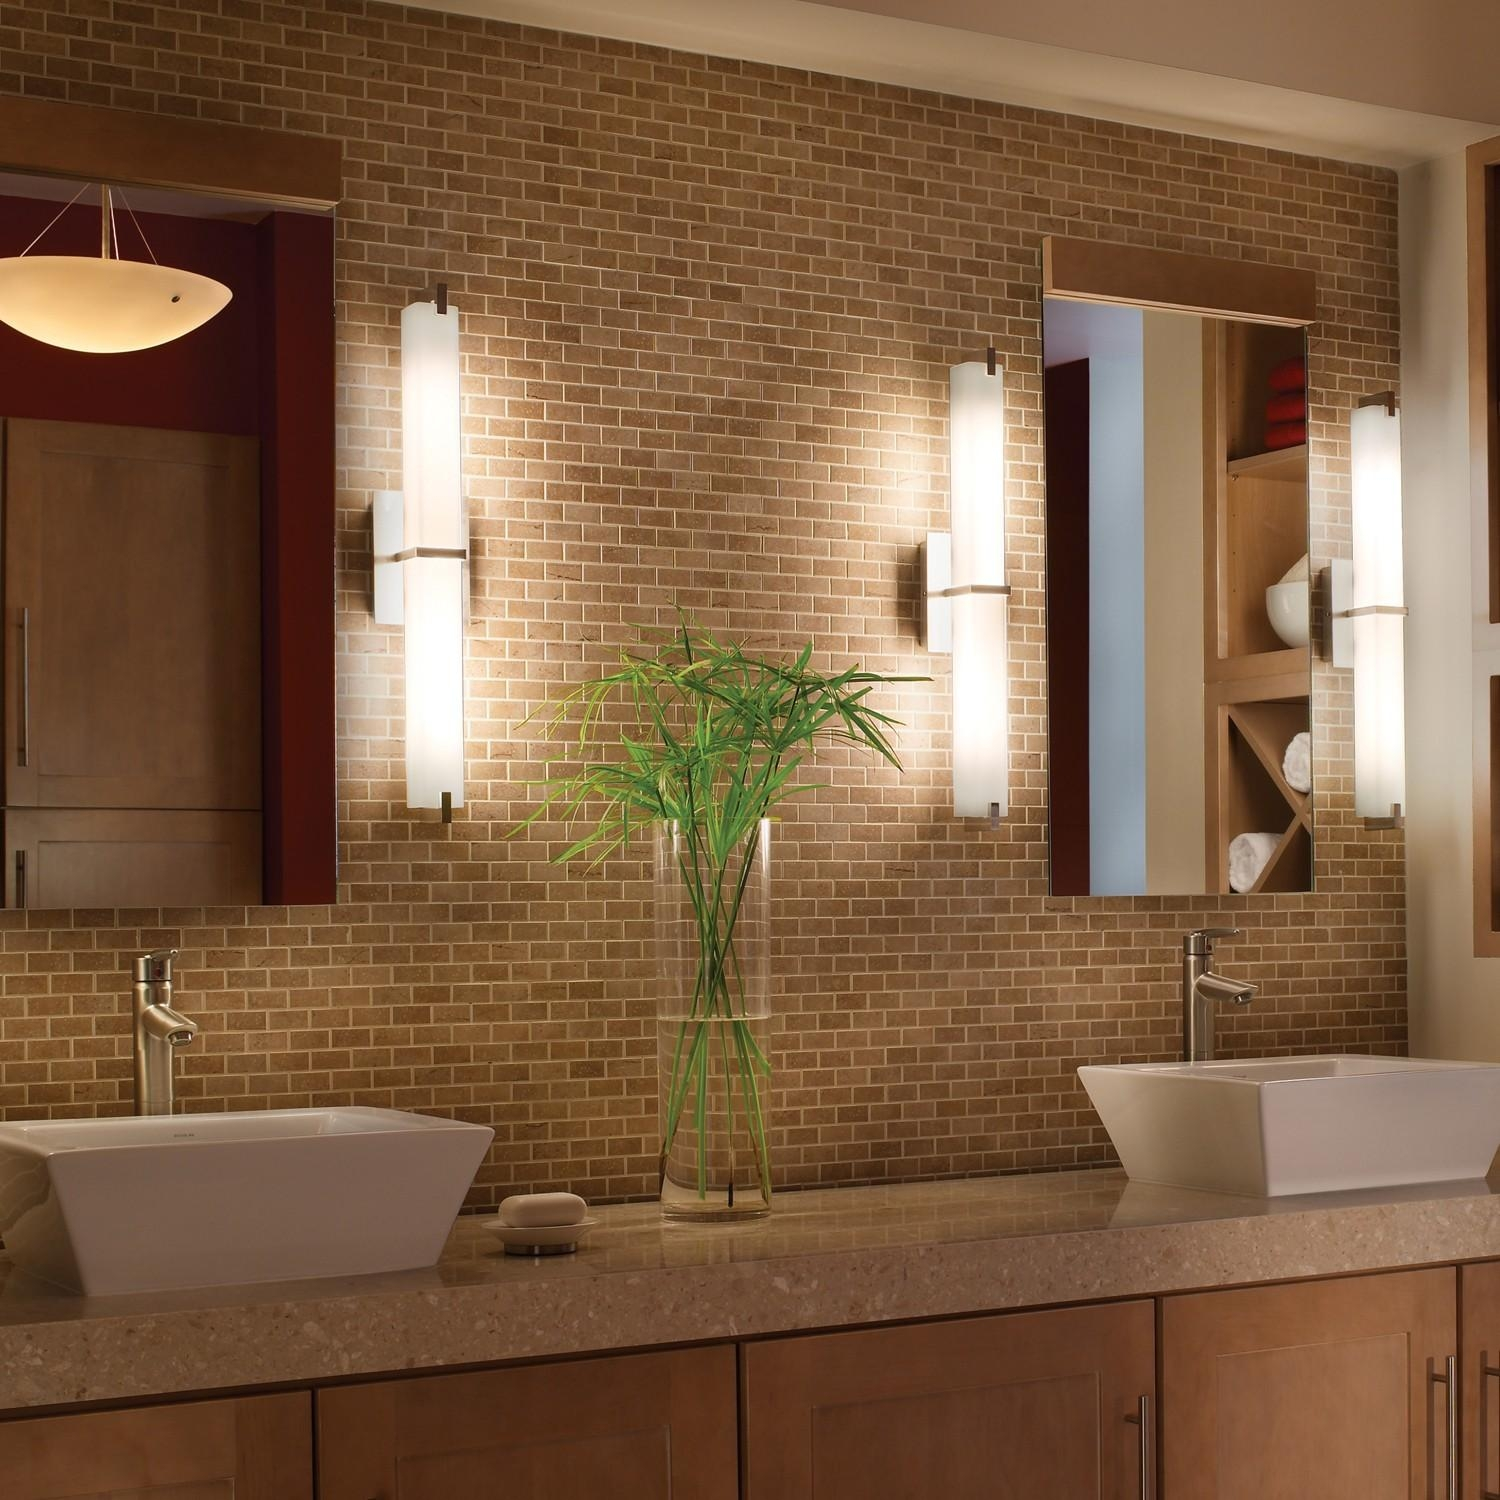 How To Light A Bathroom – Lighting Ideas & Tips | Ylighting Regarding Led Strip Lights For Bathroom Mirrors (Image 13 of 20)